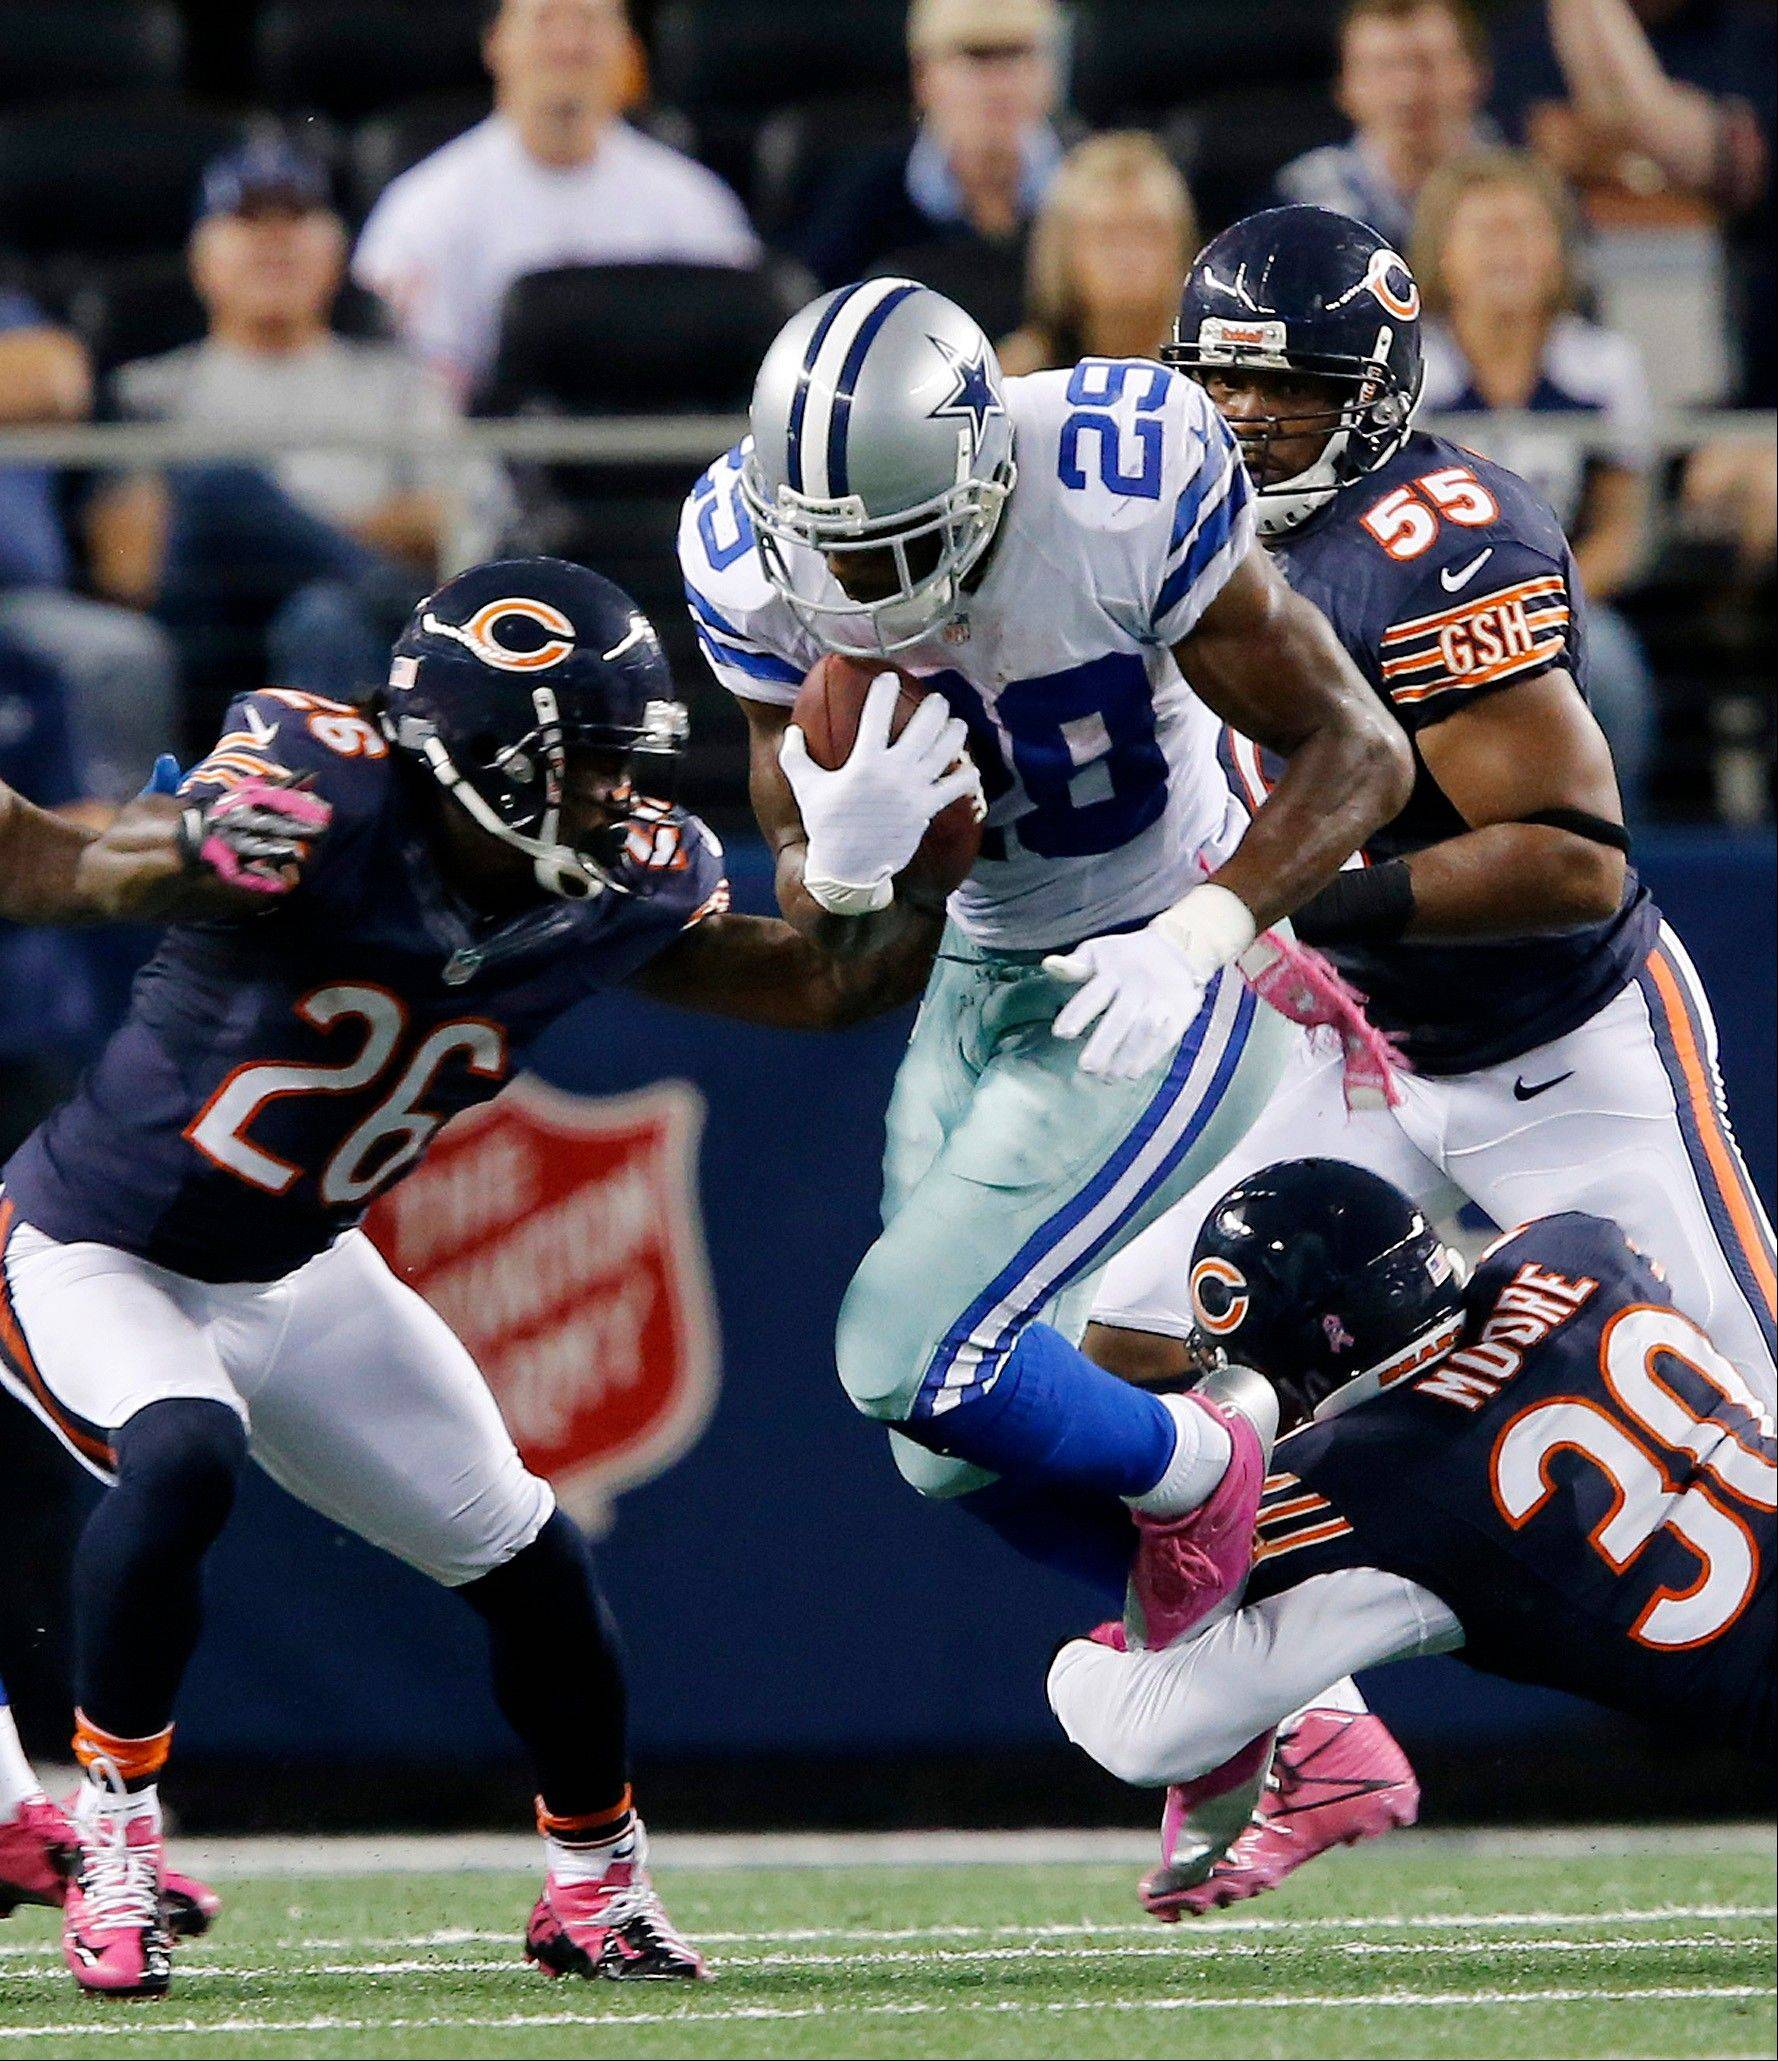 Tim Jennings (26) combines forces with D.J. Moore to tackle Cowboys running back DeMarco Murray on Monday in Dallas. Jennings was named the NFC defensive player of the month for September.